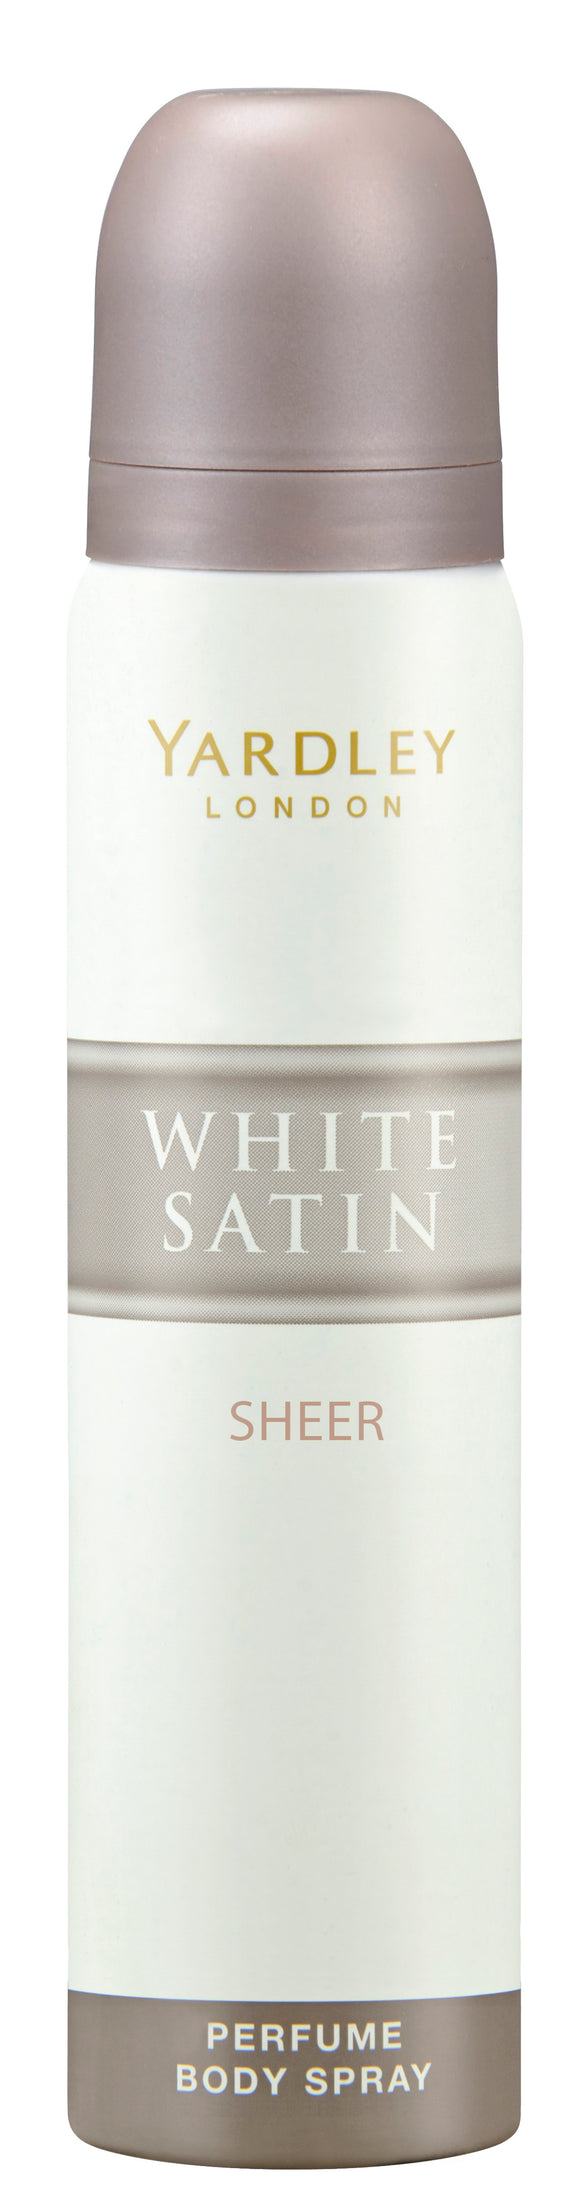 Yardley White Satin Perfume Body Spray Sheer 90ML